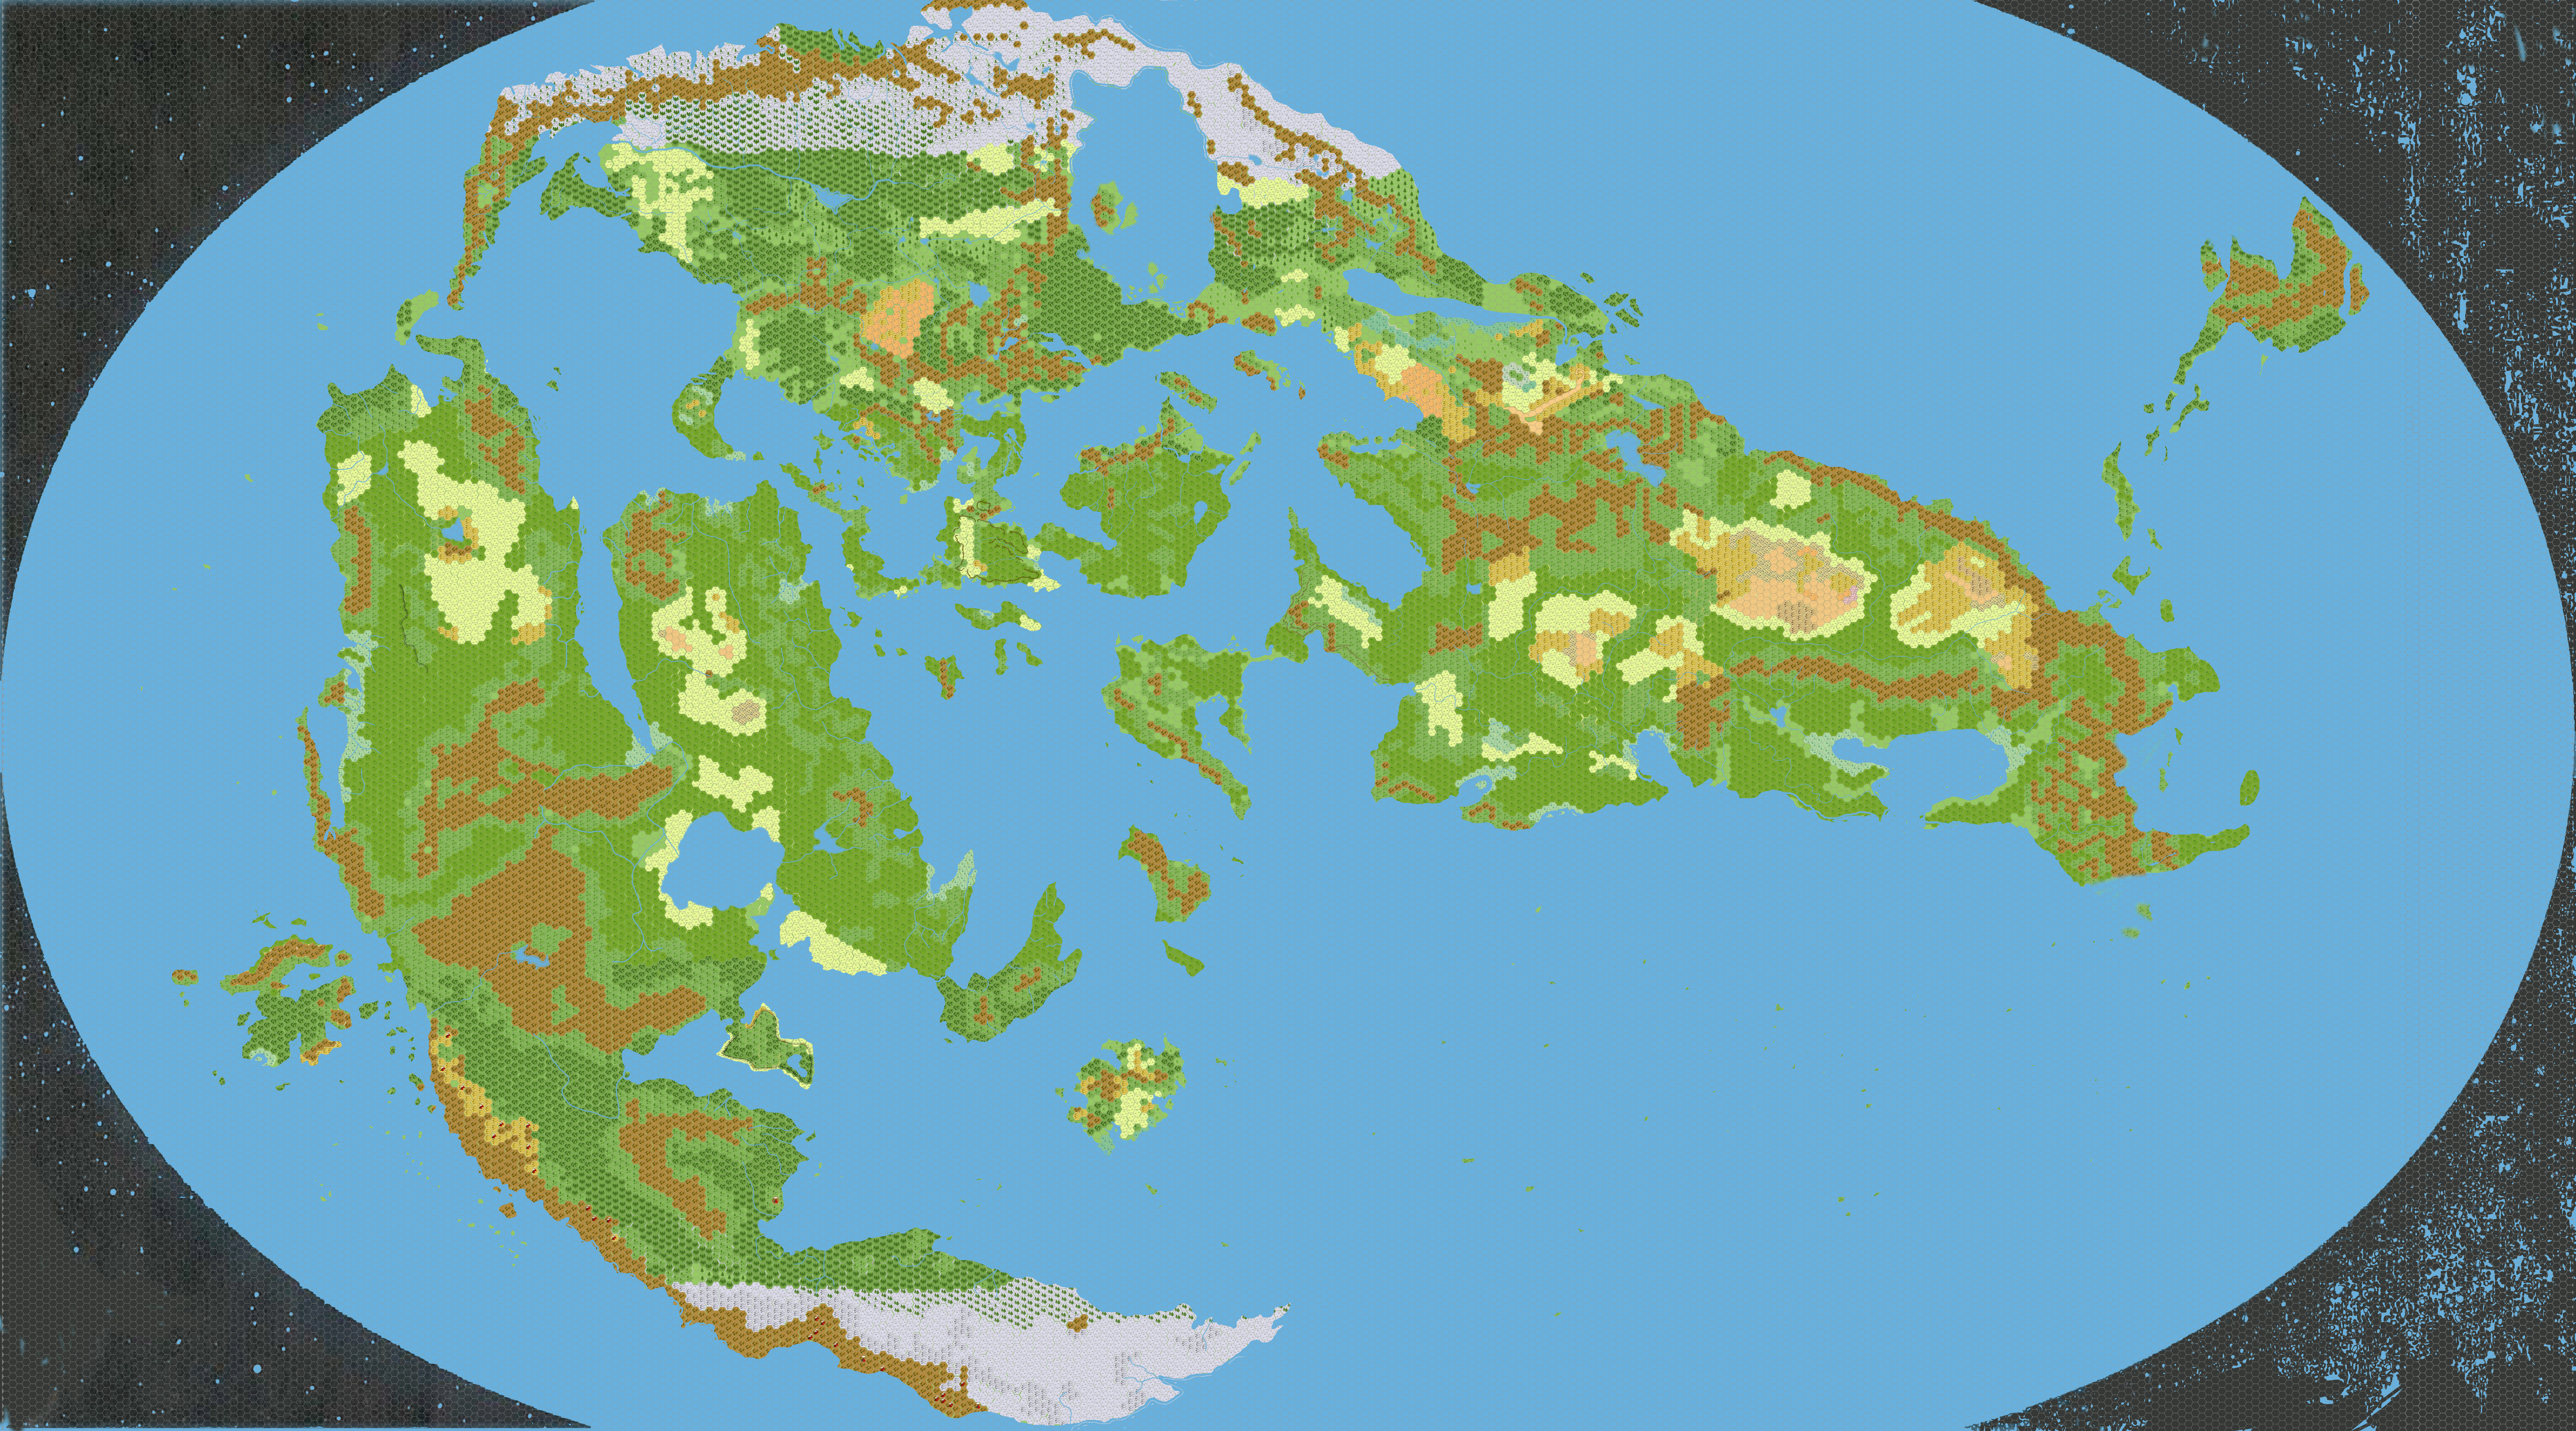 Mystara outer world 8250 bc 72 miles per hex thats my final 72 miles per hex map showing mystara in 8250 bc at the age of lhomarr as developed by geoff gander my interpretation of the planet at gumiabroncs Gallery